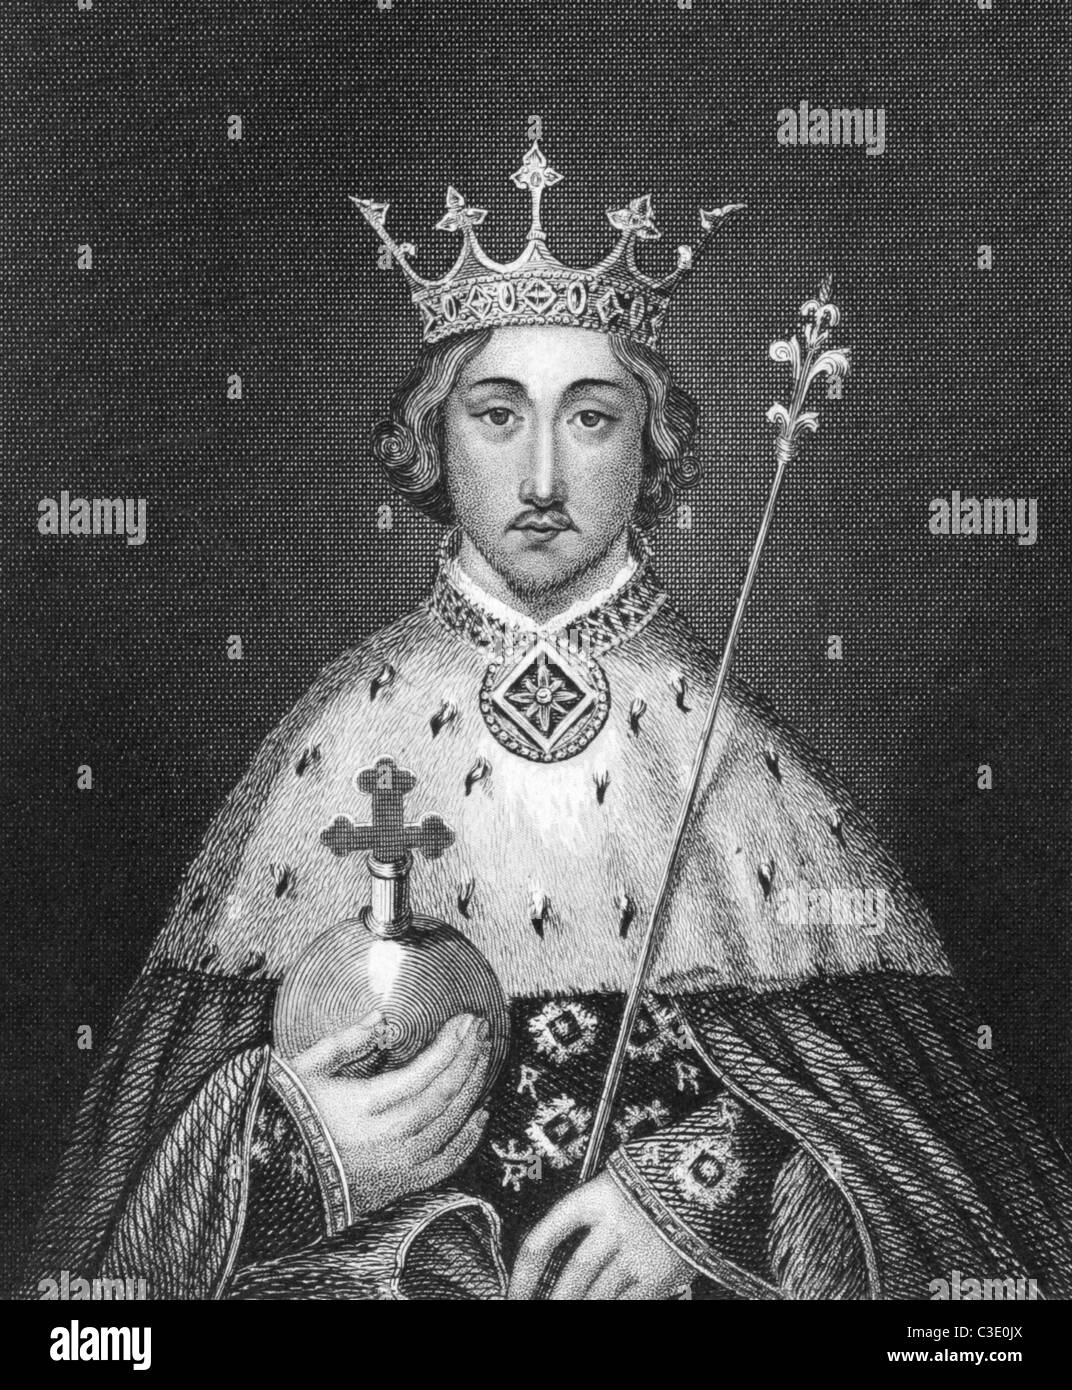 Richard II of England (1367-1400) on engraving from 1830. King of England during 1377-1399. Published in London - Stock Image